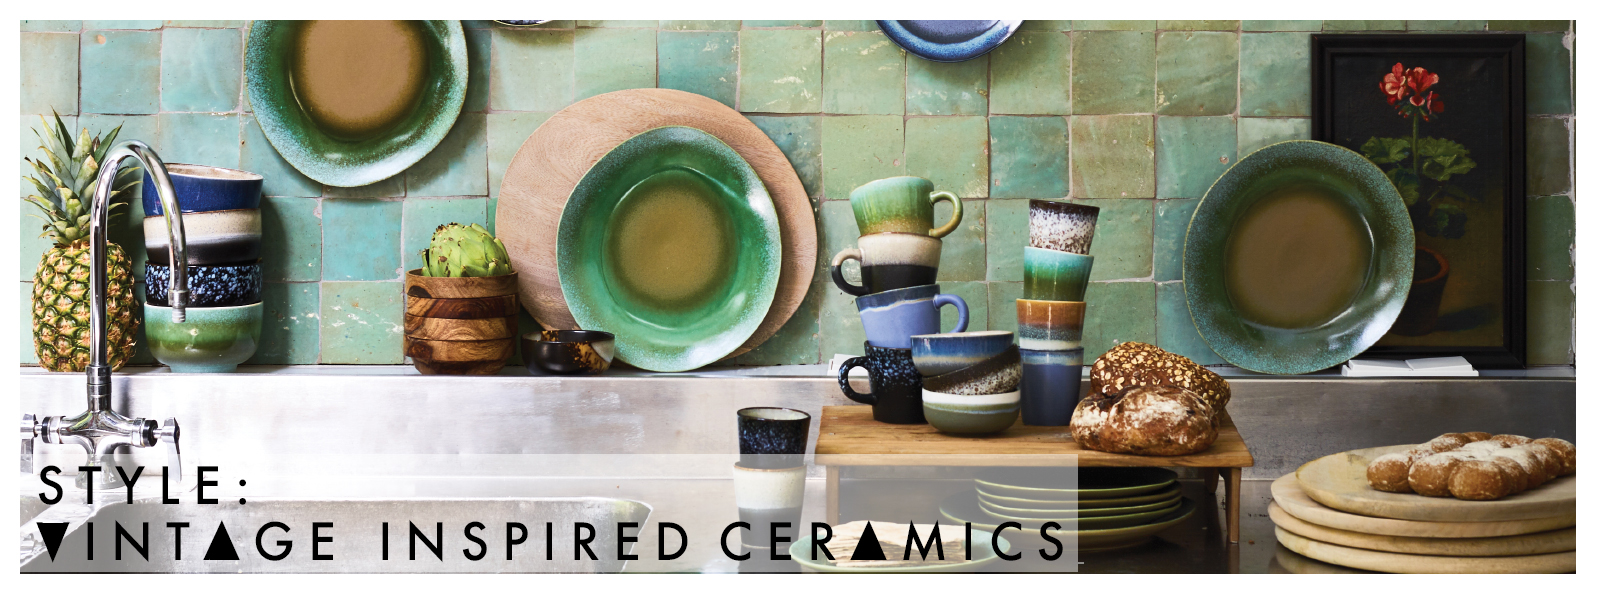 70's inspired ceramics collection